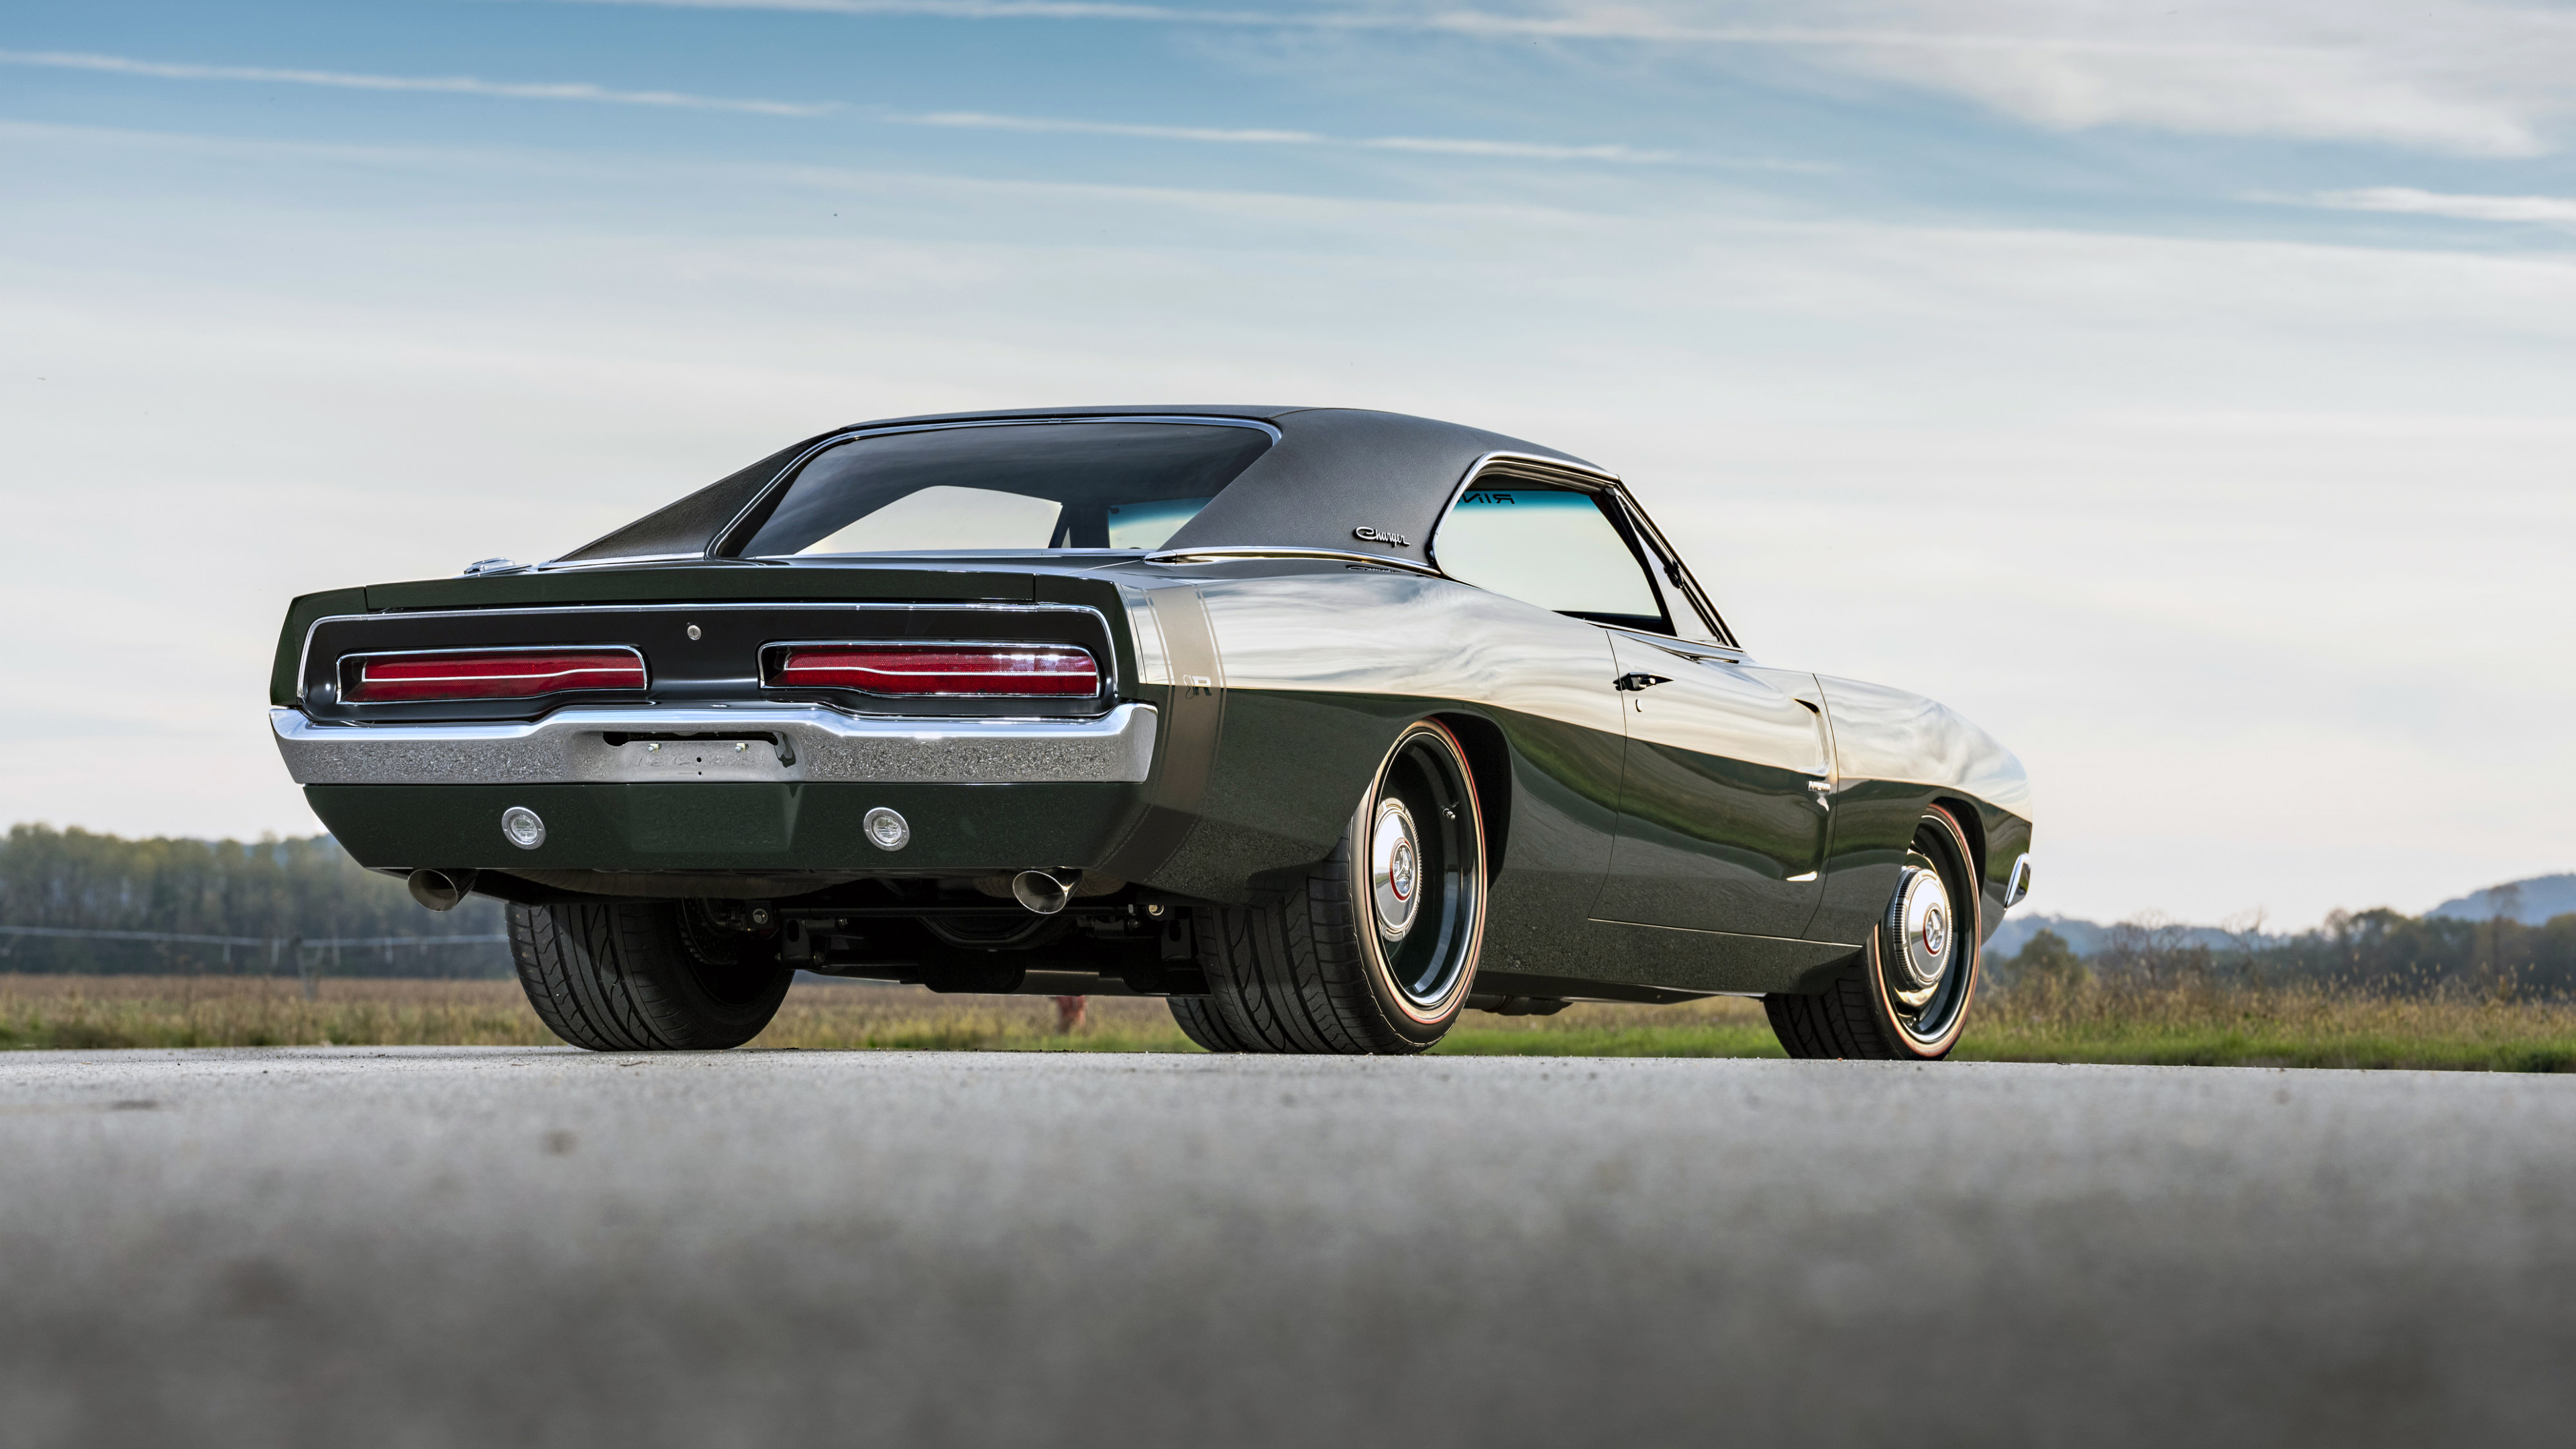 1969 ringbrothers dodge charger defector rear 1539109177 - 1969 Ringbrothers Dodge Charger Defector Rear - hd-wallpapers, dodge charger wallpapers, cars wallpapers, 4k-wallpapers